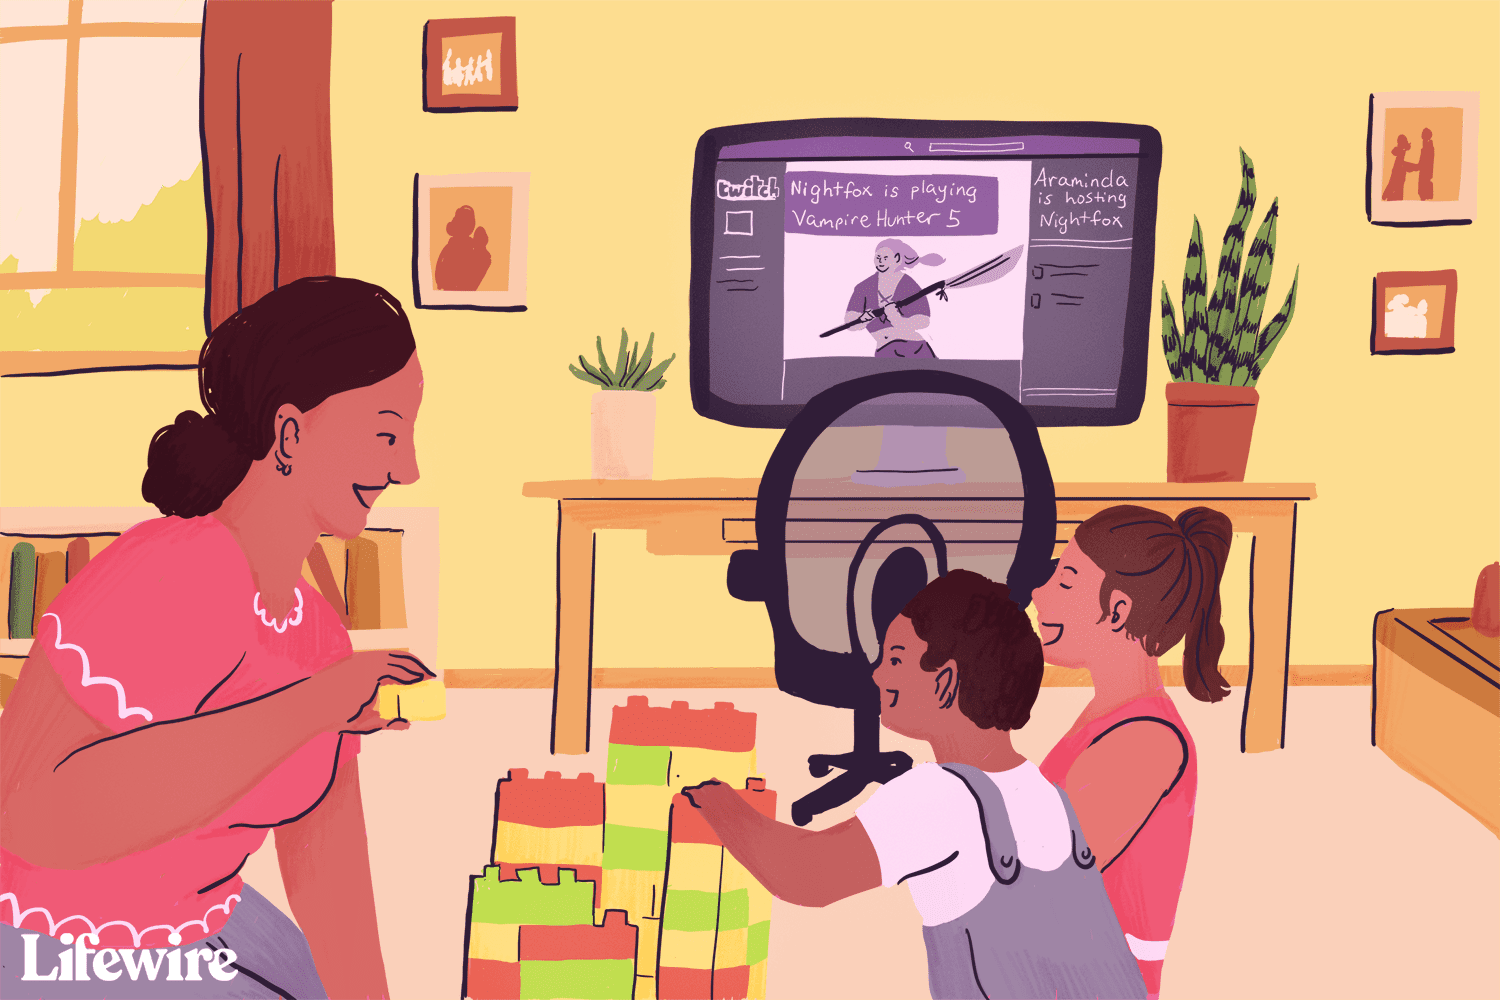 A woman playing with her children in front of a computer showing a Twitch stream